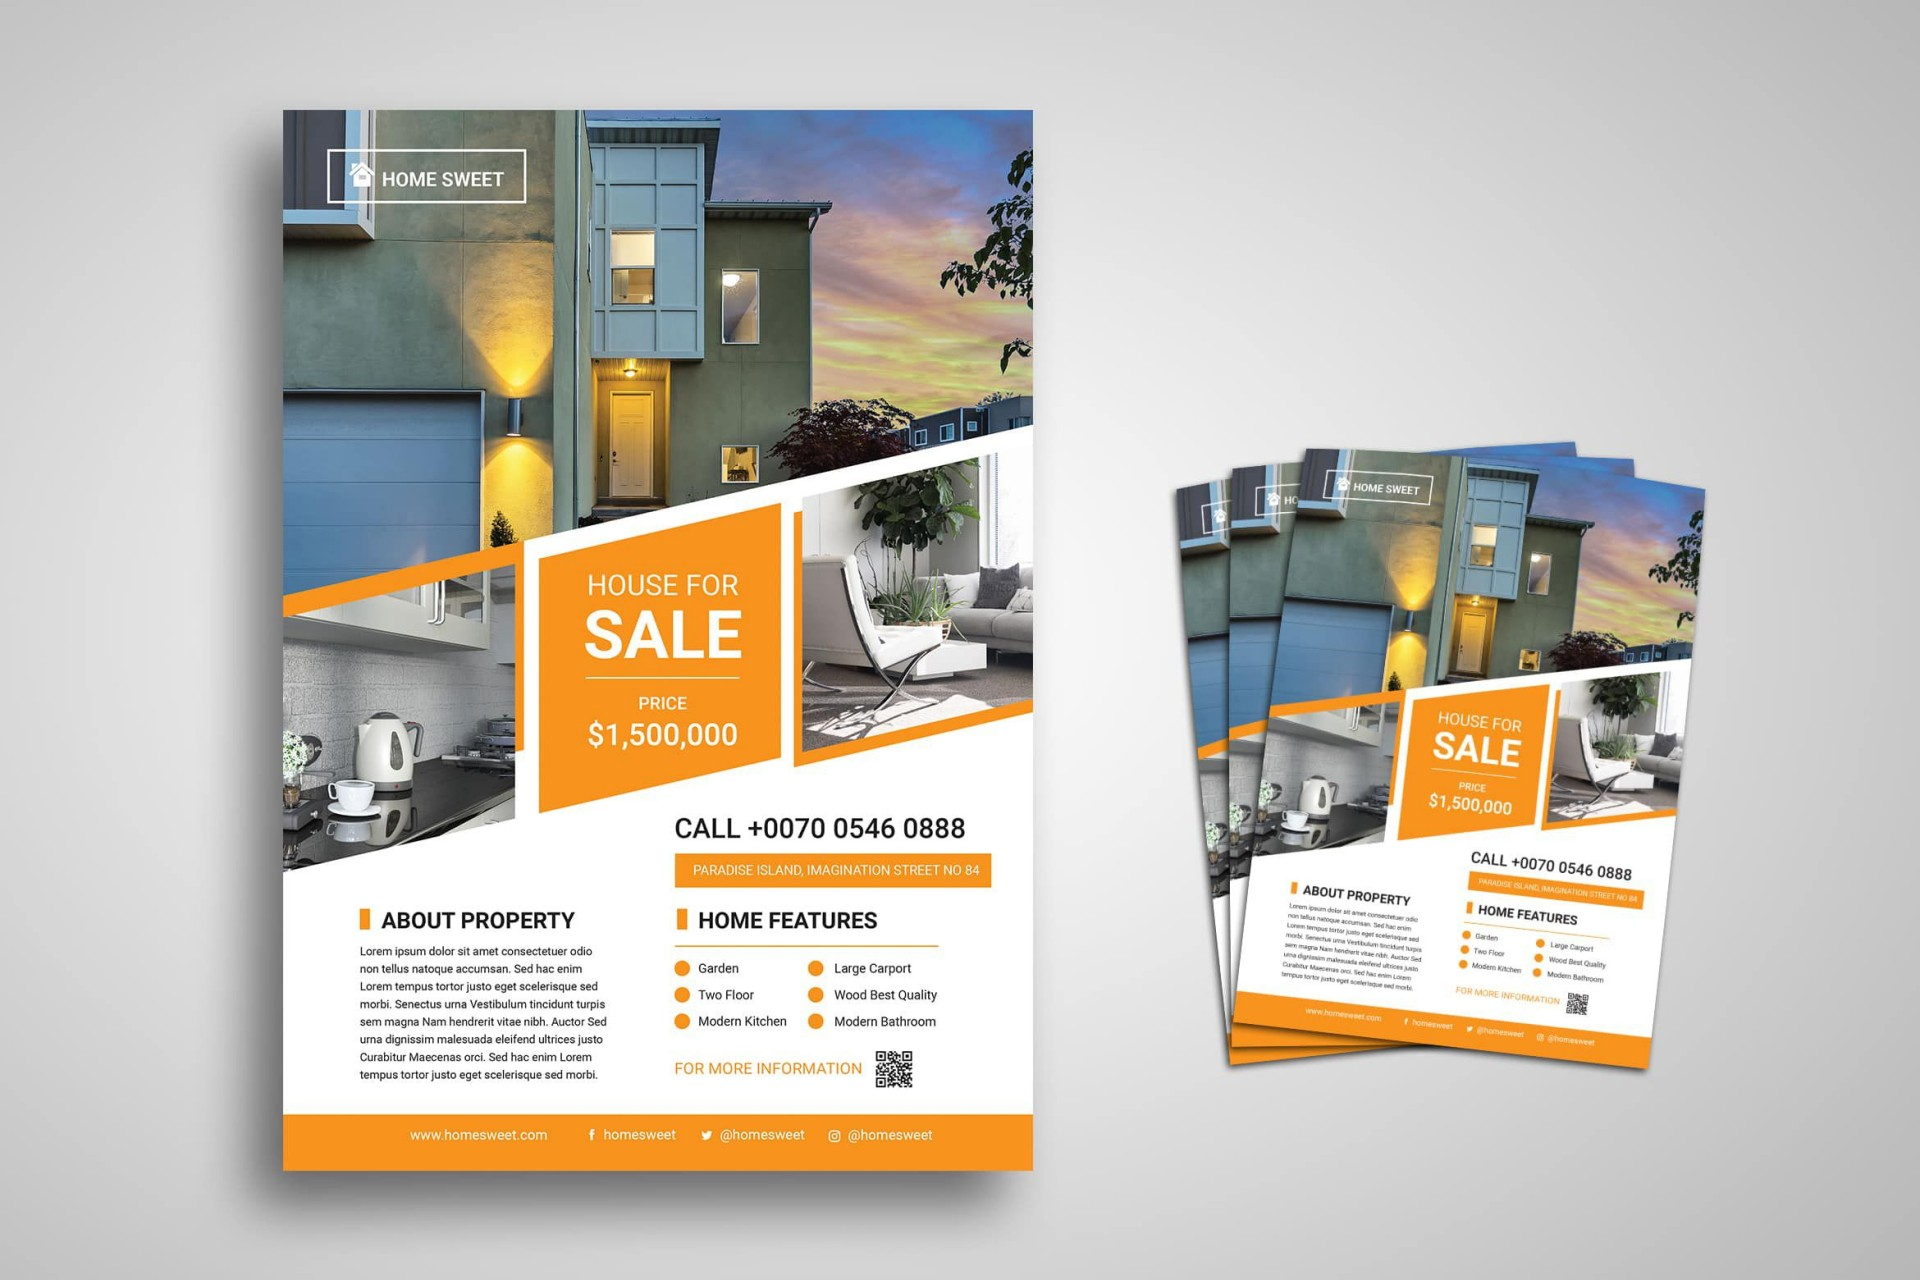 003 Unique House For Sale Flyer Template Highest Quality  Free Real Estate Example By Owner1920